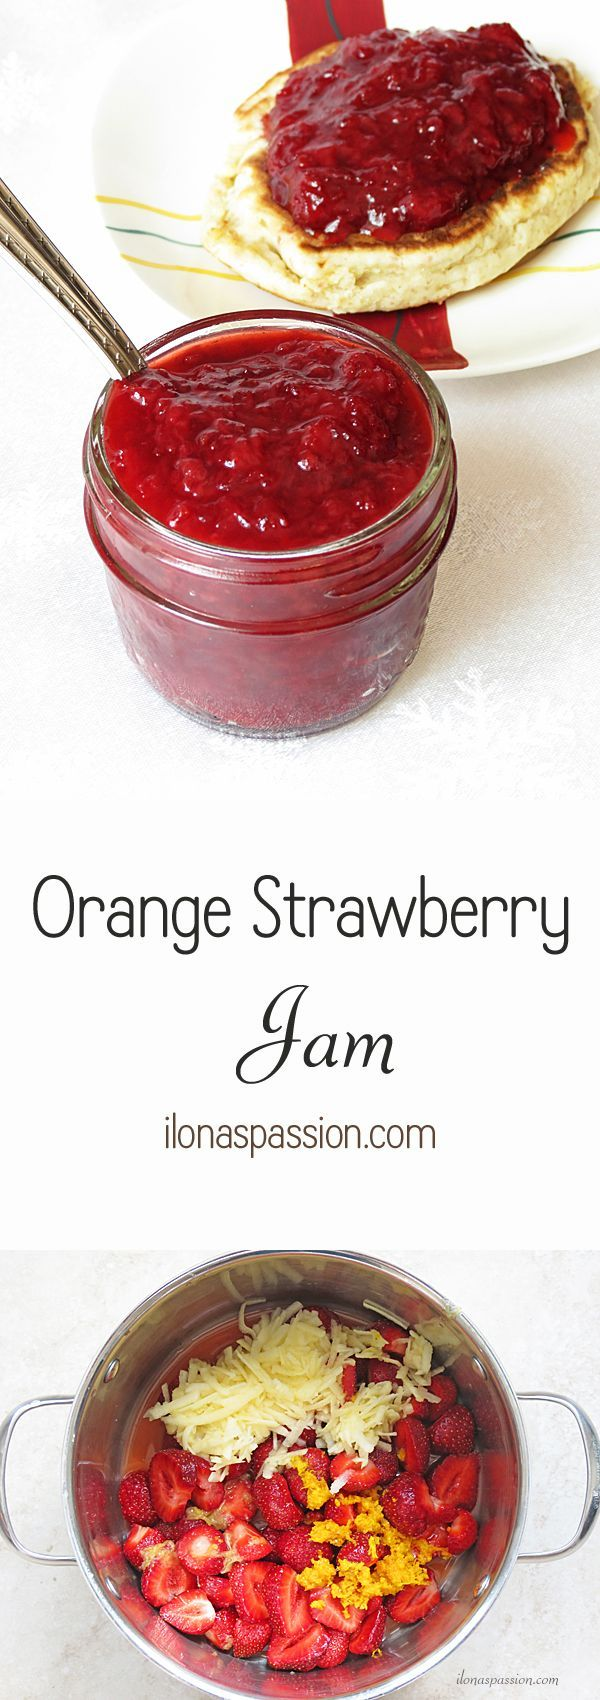 Strawberry jam with orange, lemon and apple flavor by http://ilonaspassion.com #jam #strawberry #nopectin #orange